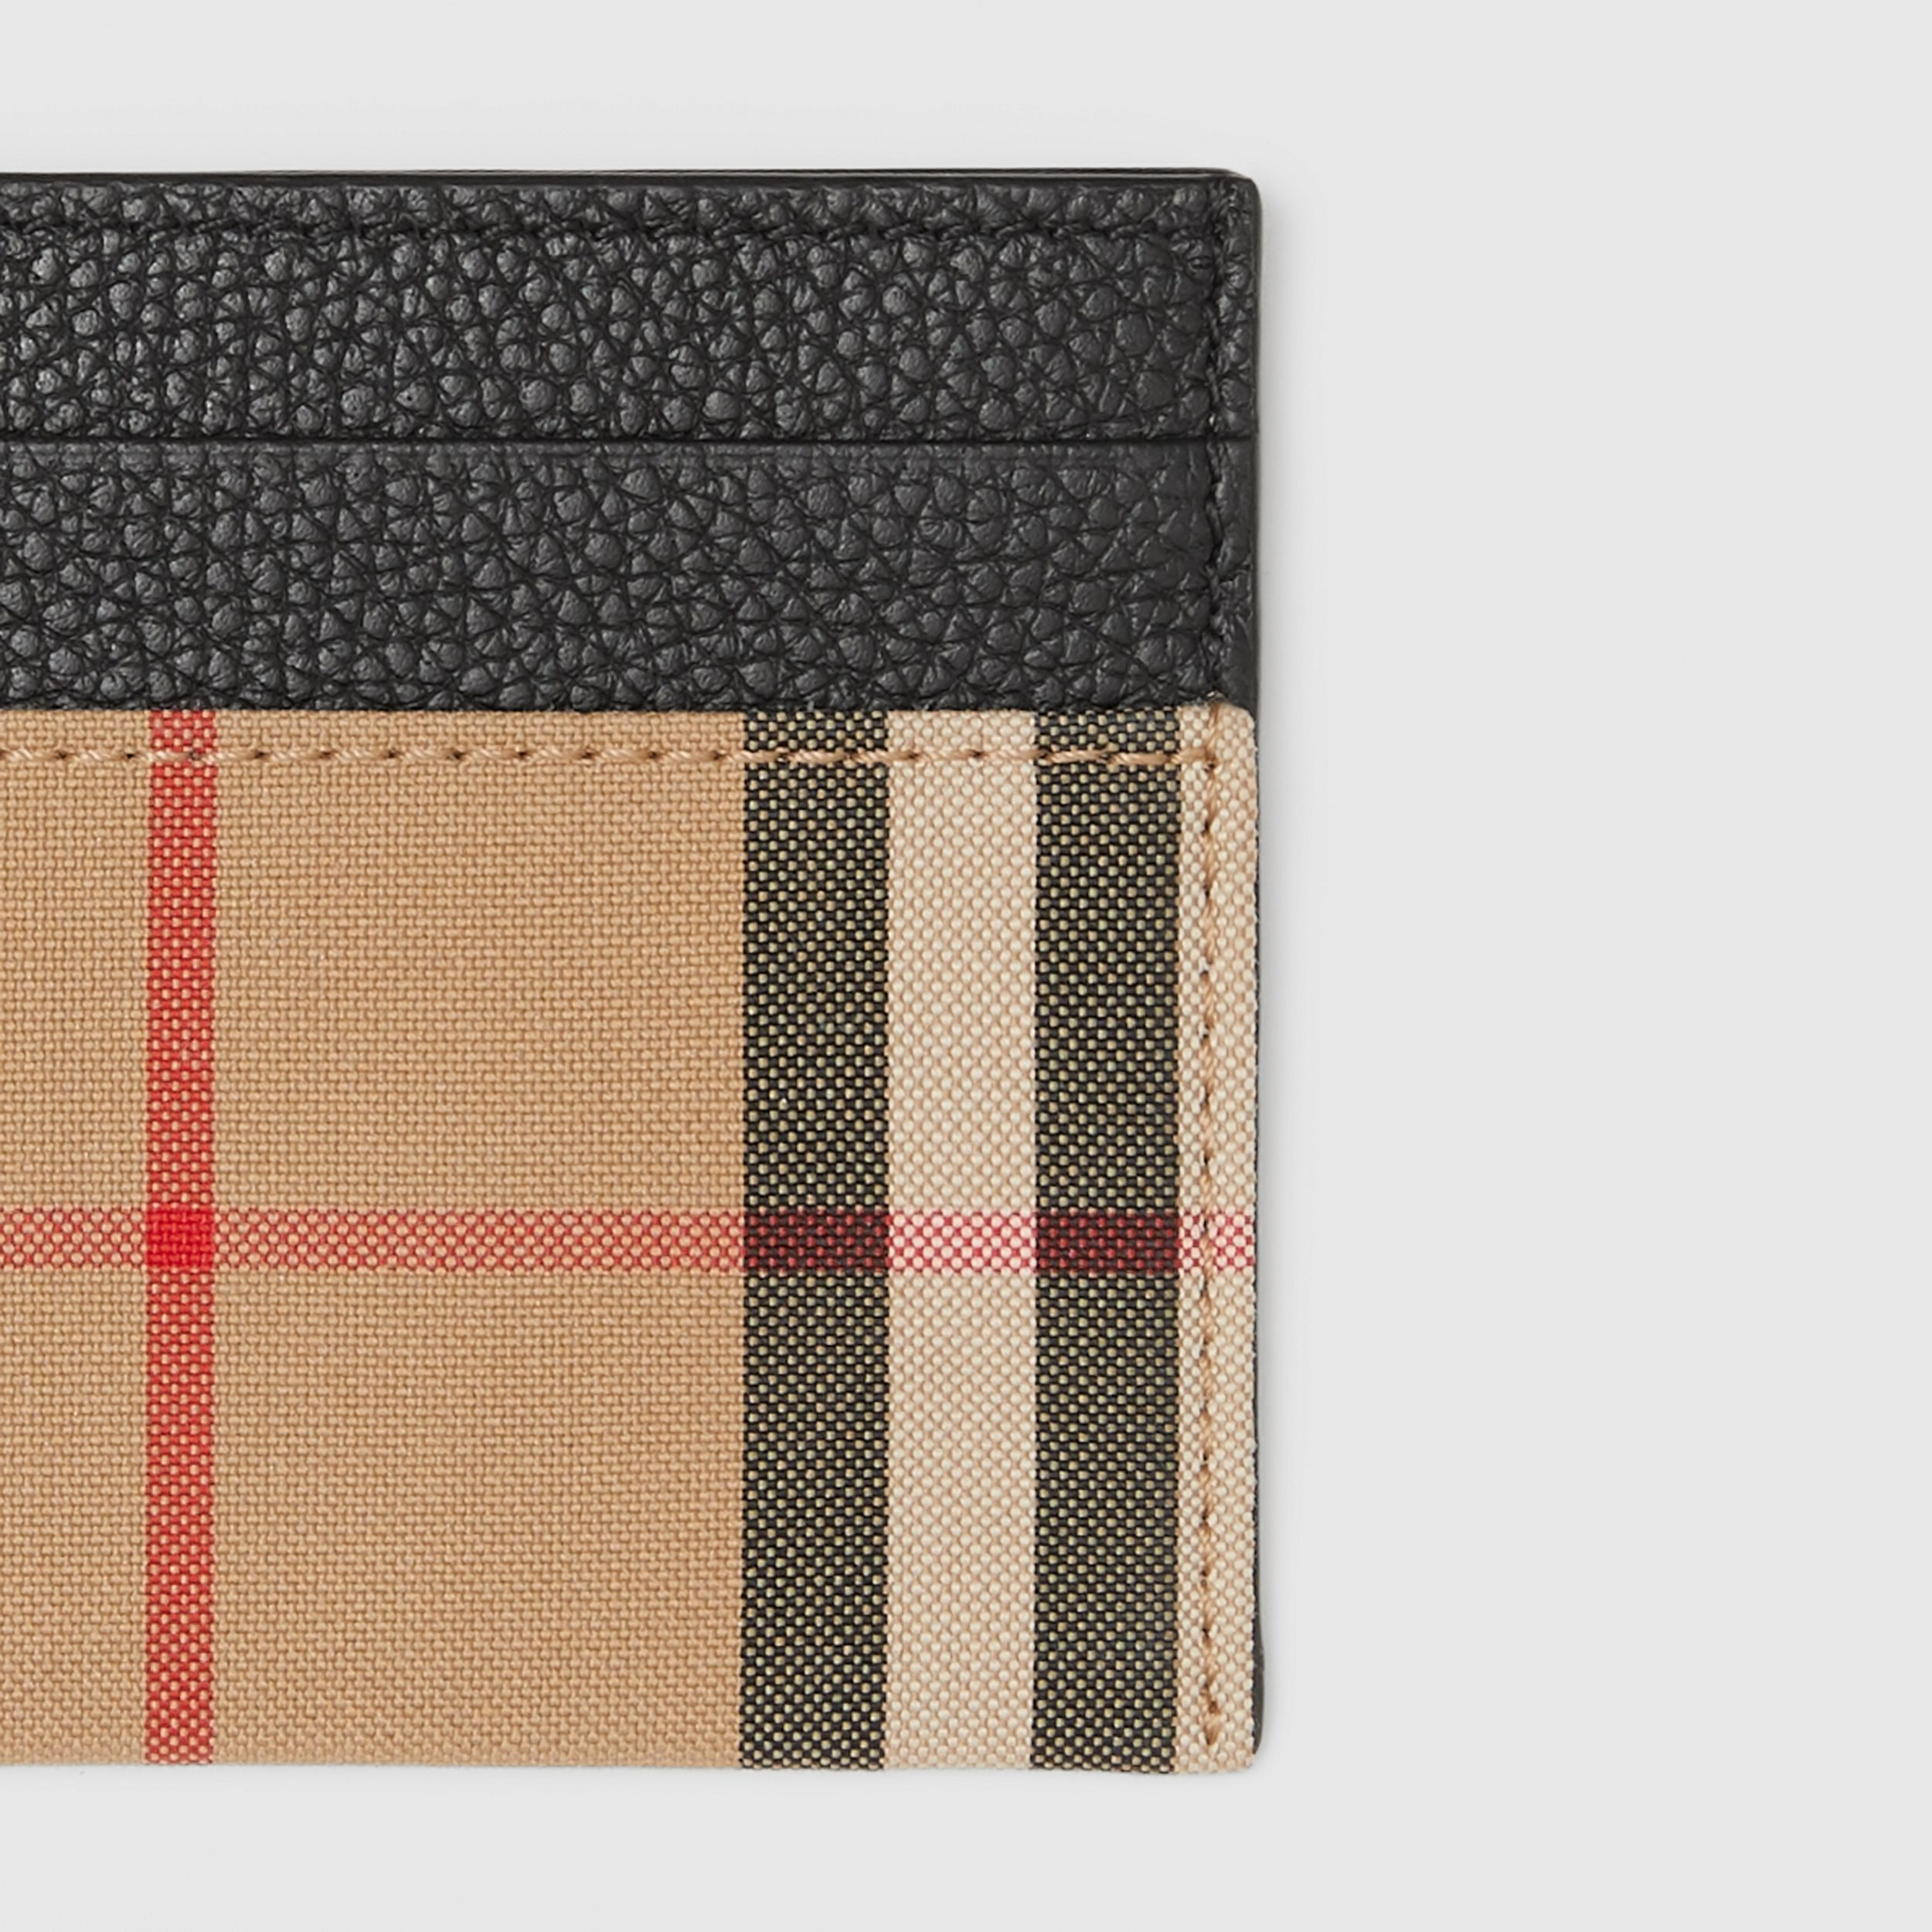 Vintage Check and Leather Card Case in Black - Women | Burberry United Kingdom - 2